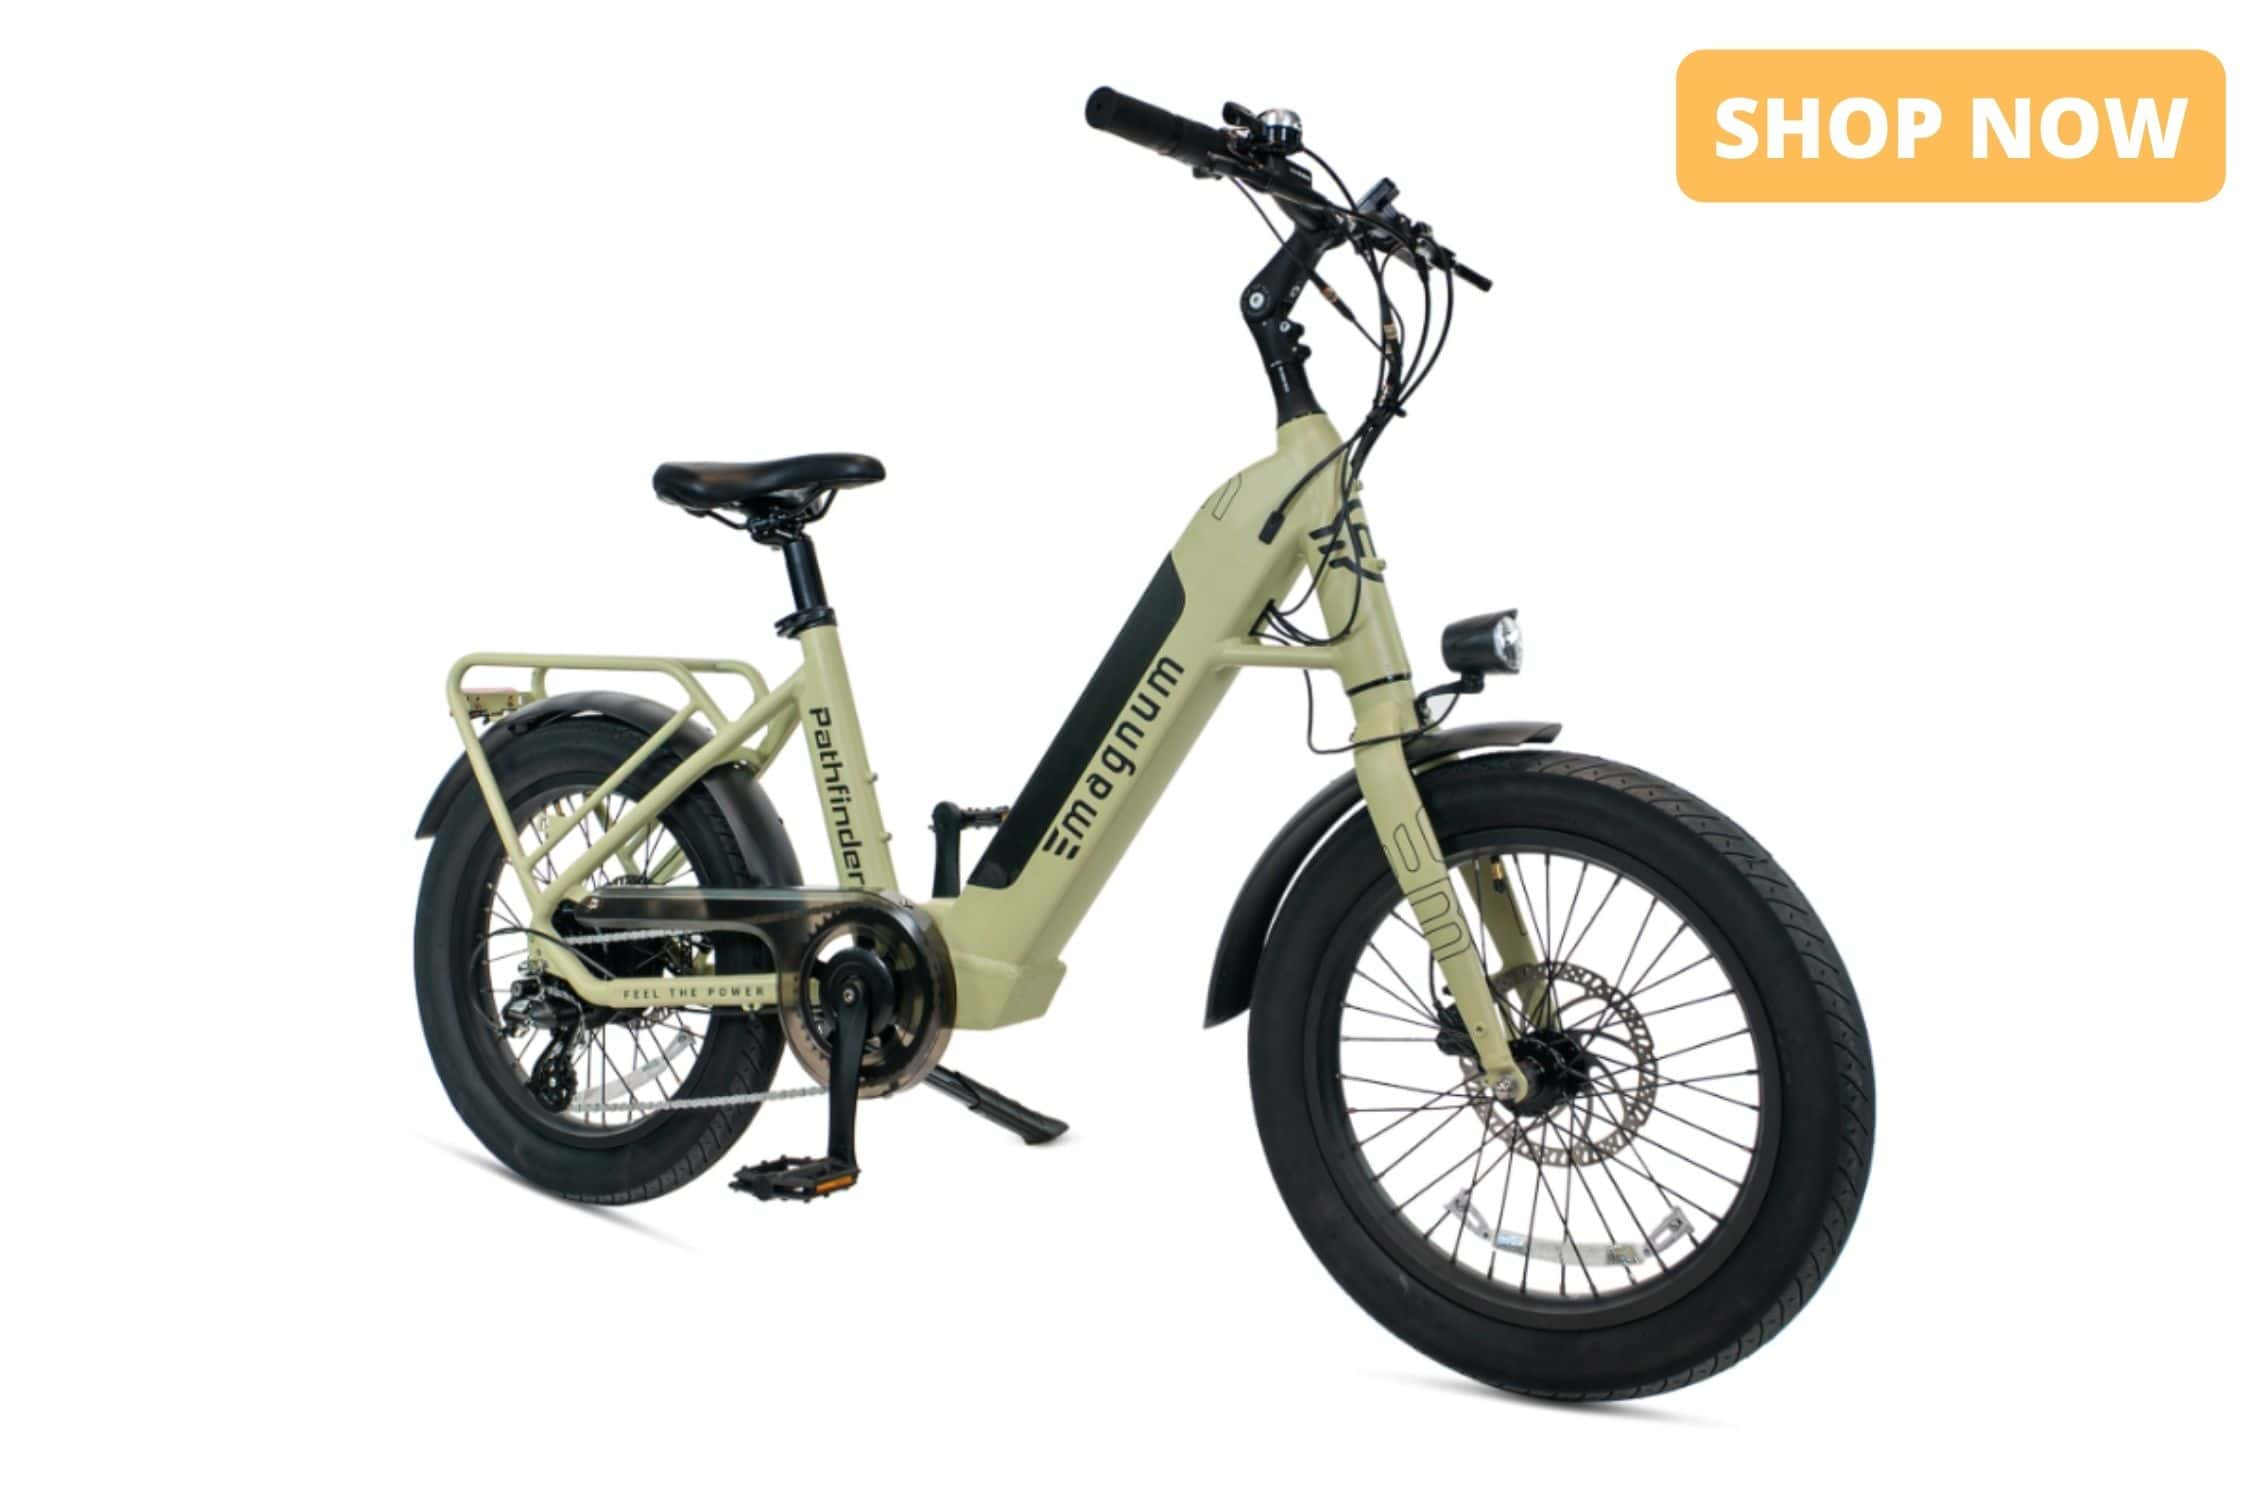 Magnum Pathfinder Electric Bike Product Page